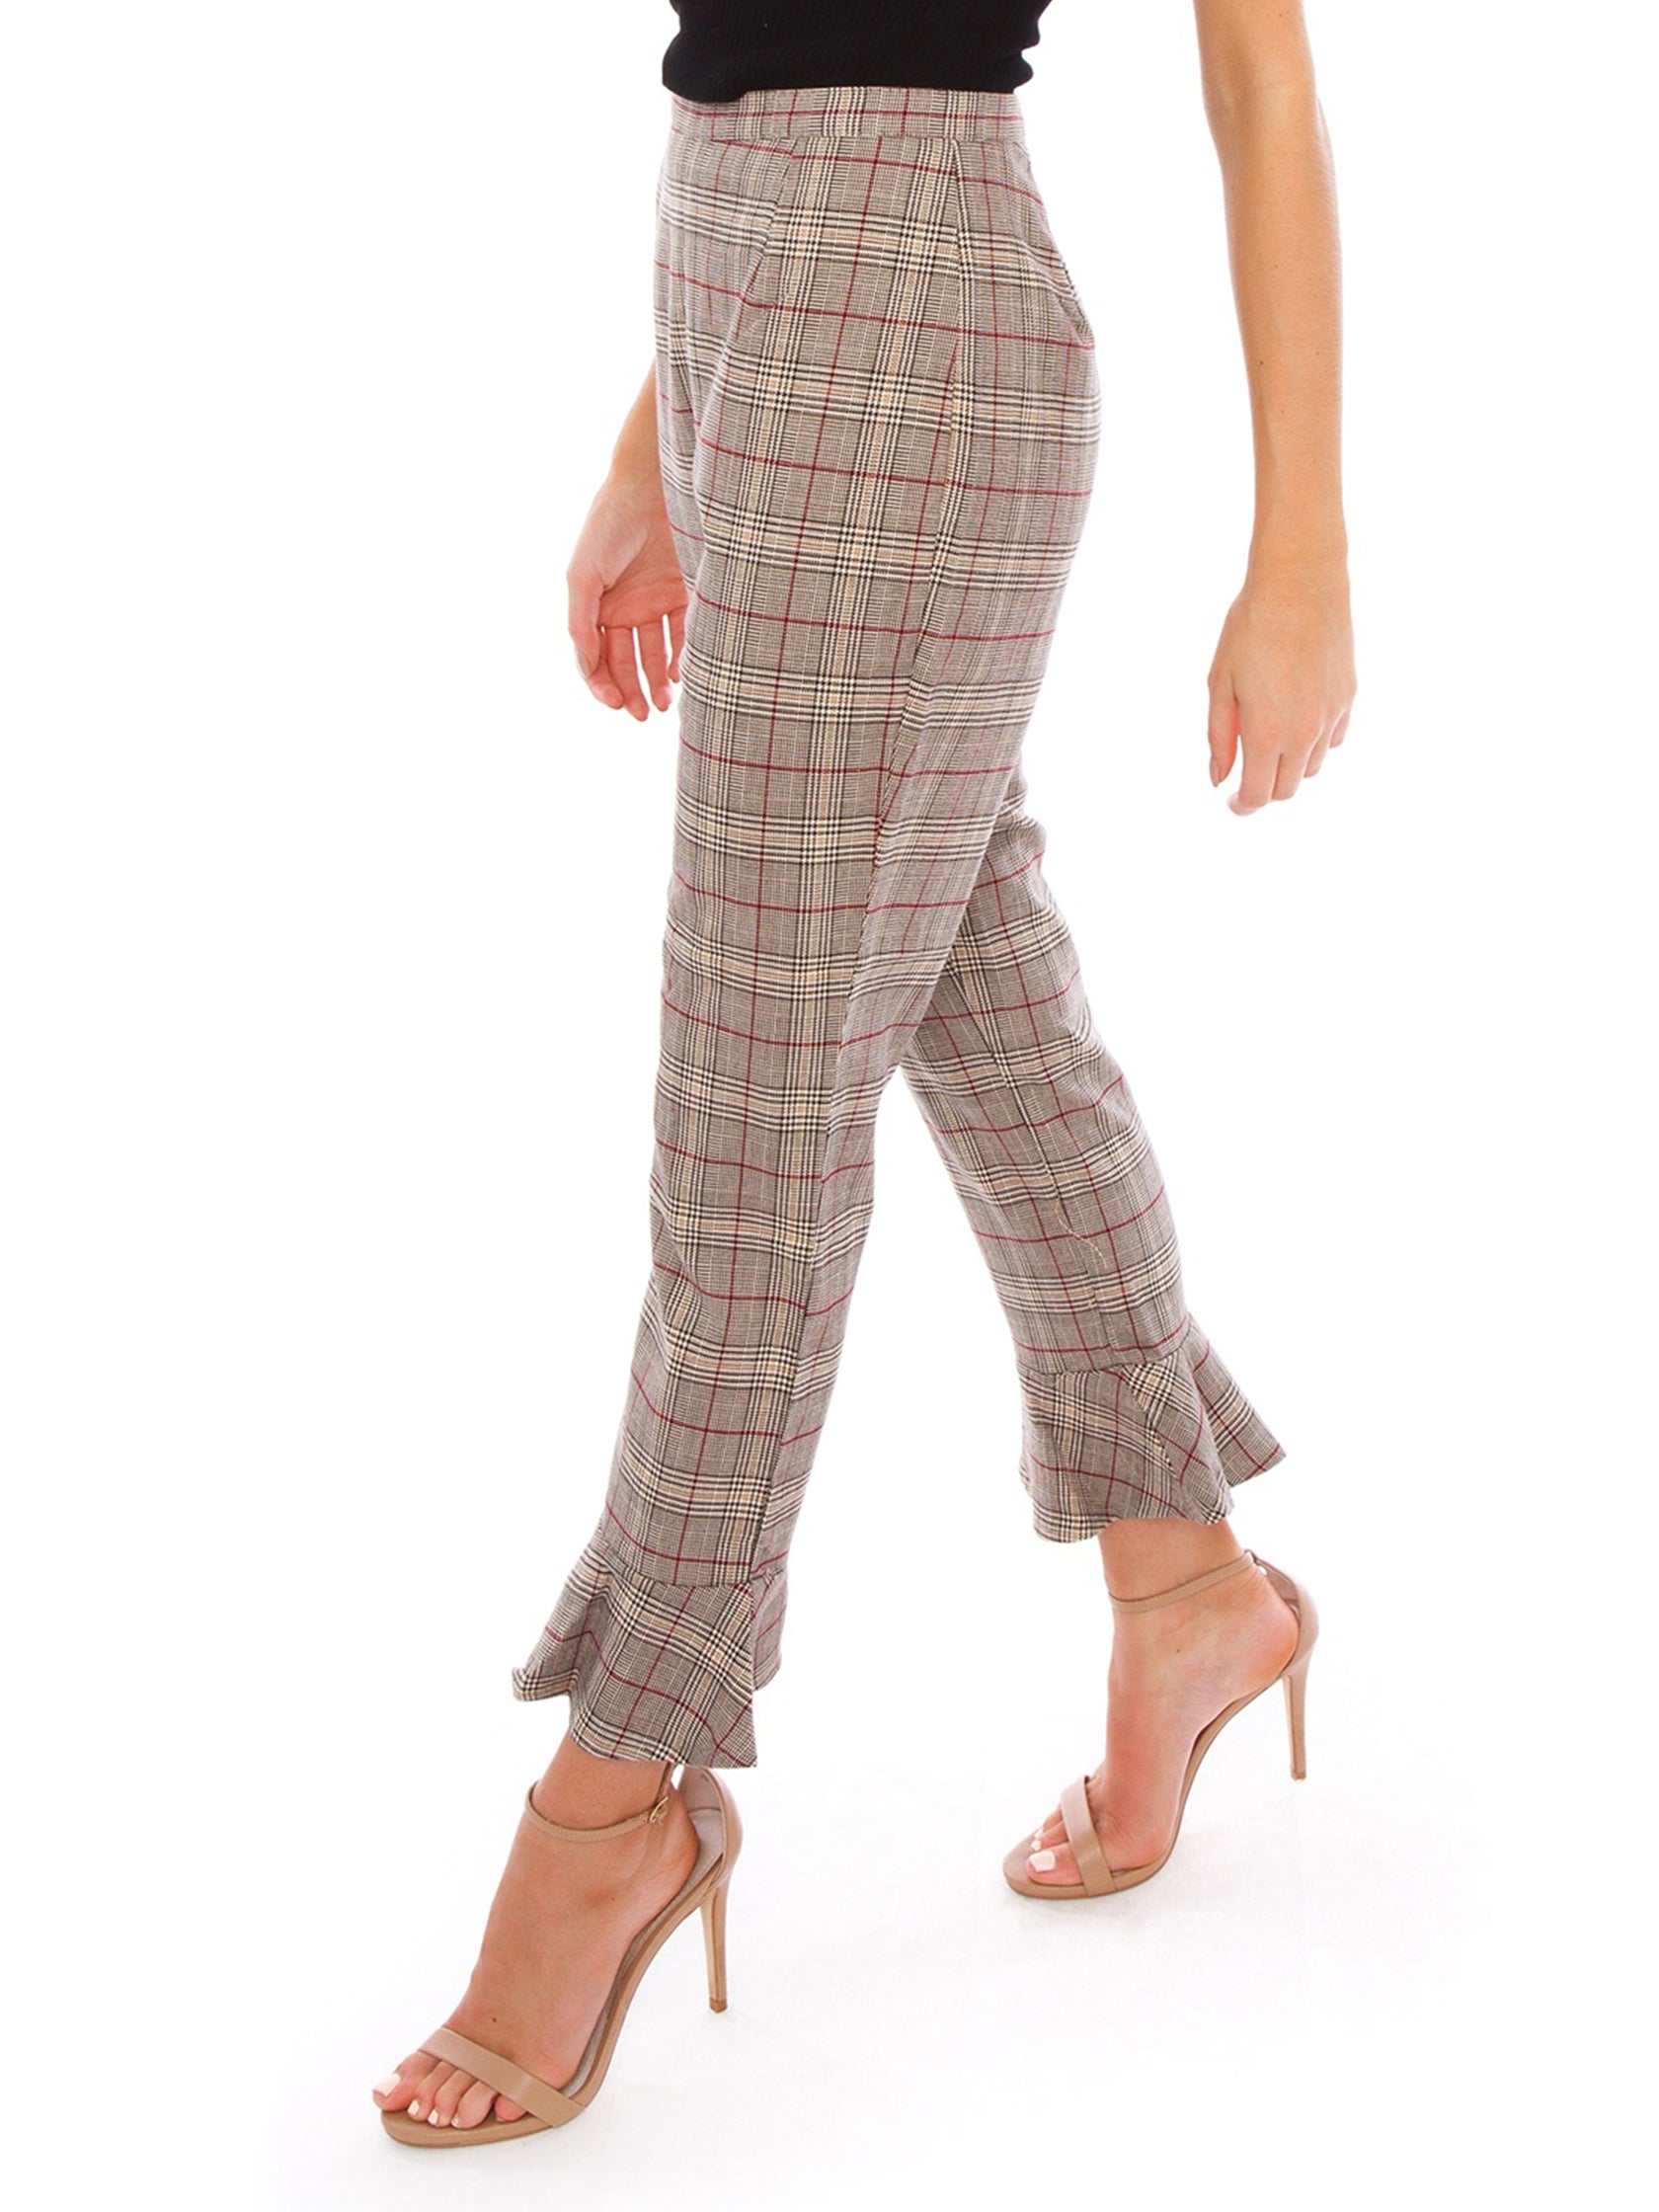 Women wearing a pants rental from BB Dakota called New Wave Pant